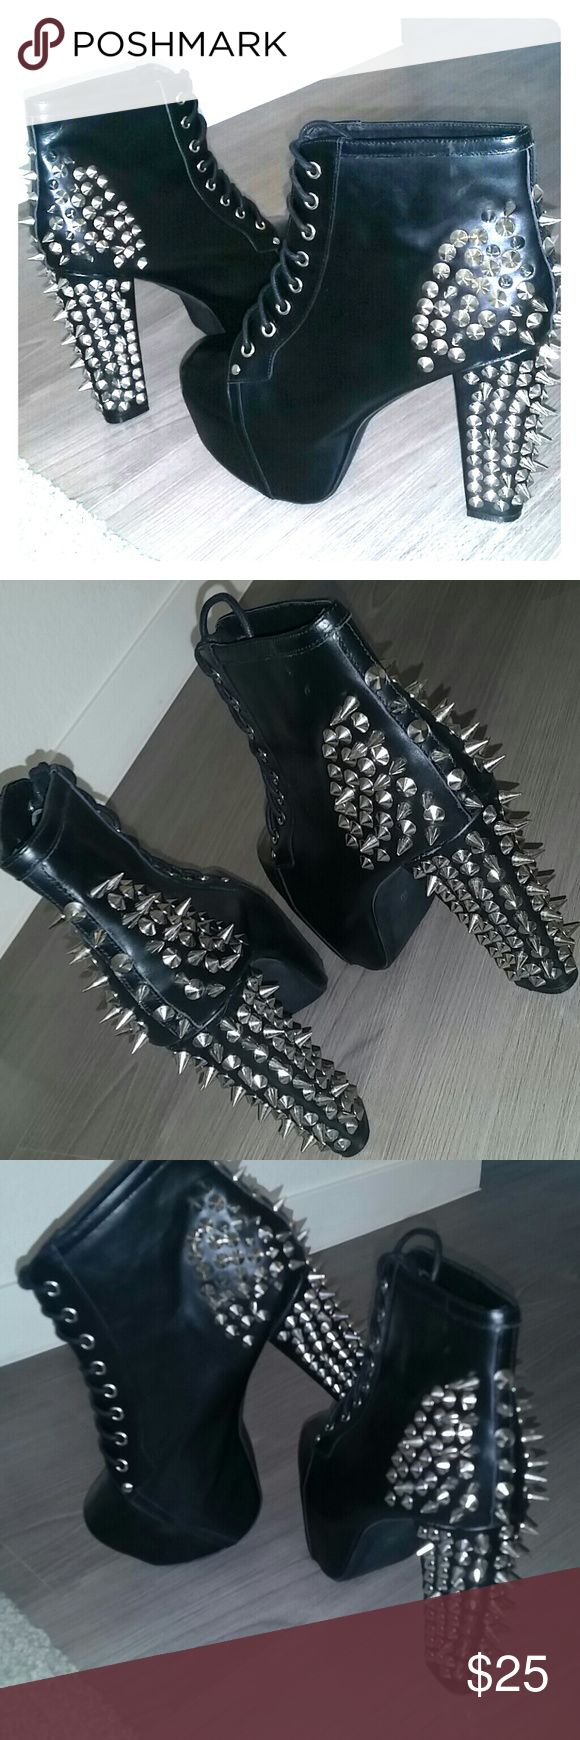 Jeffrey Campbell Spiked  Heel boots LIMITED TIME In great condition were only ones authentic Jeffrey Campbell heels Jeffrey Campbell Shoes Heeled Boots